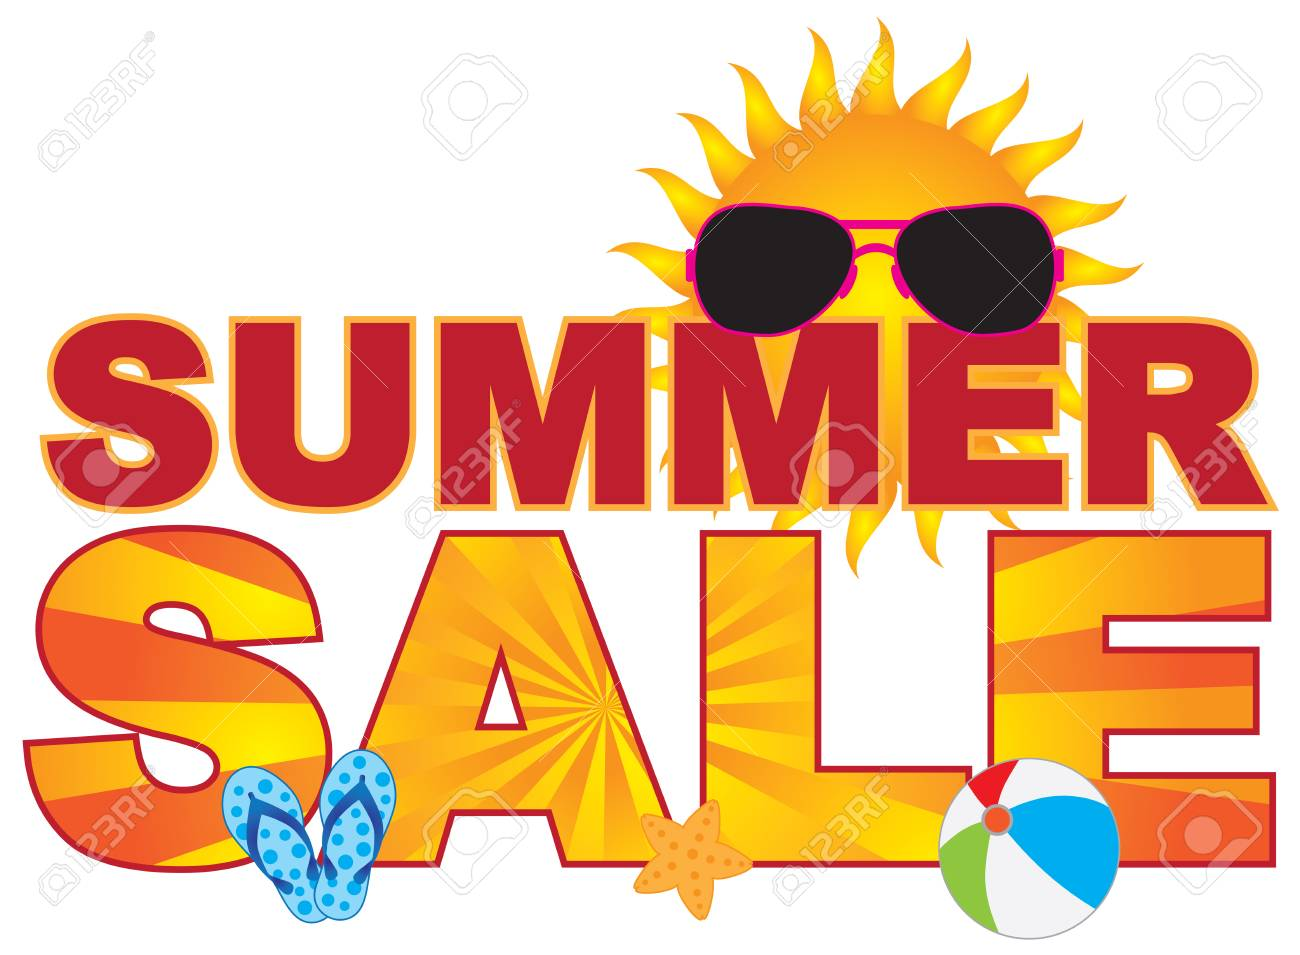 d6cf647095fff Summer Sale retail store sign banner with sunglasses flip-flop beach ball  sun illustration Stock